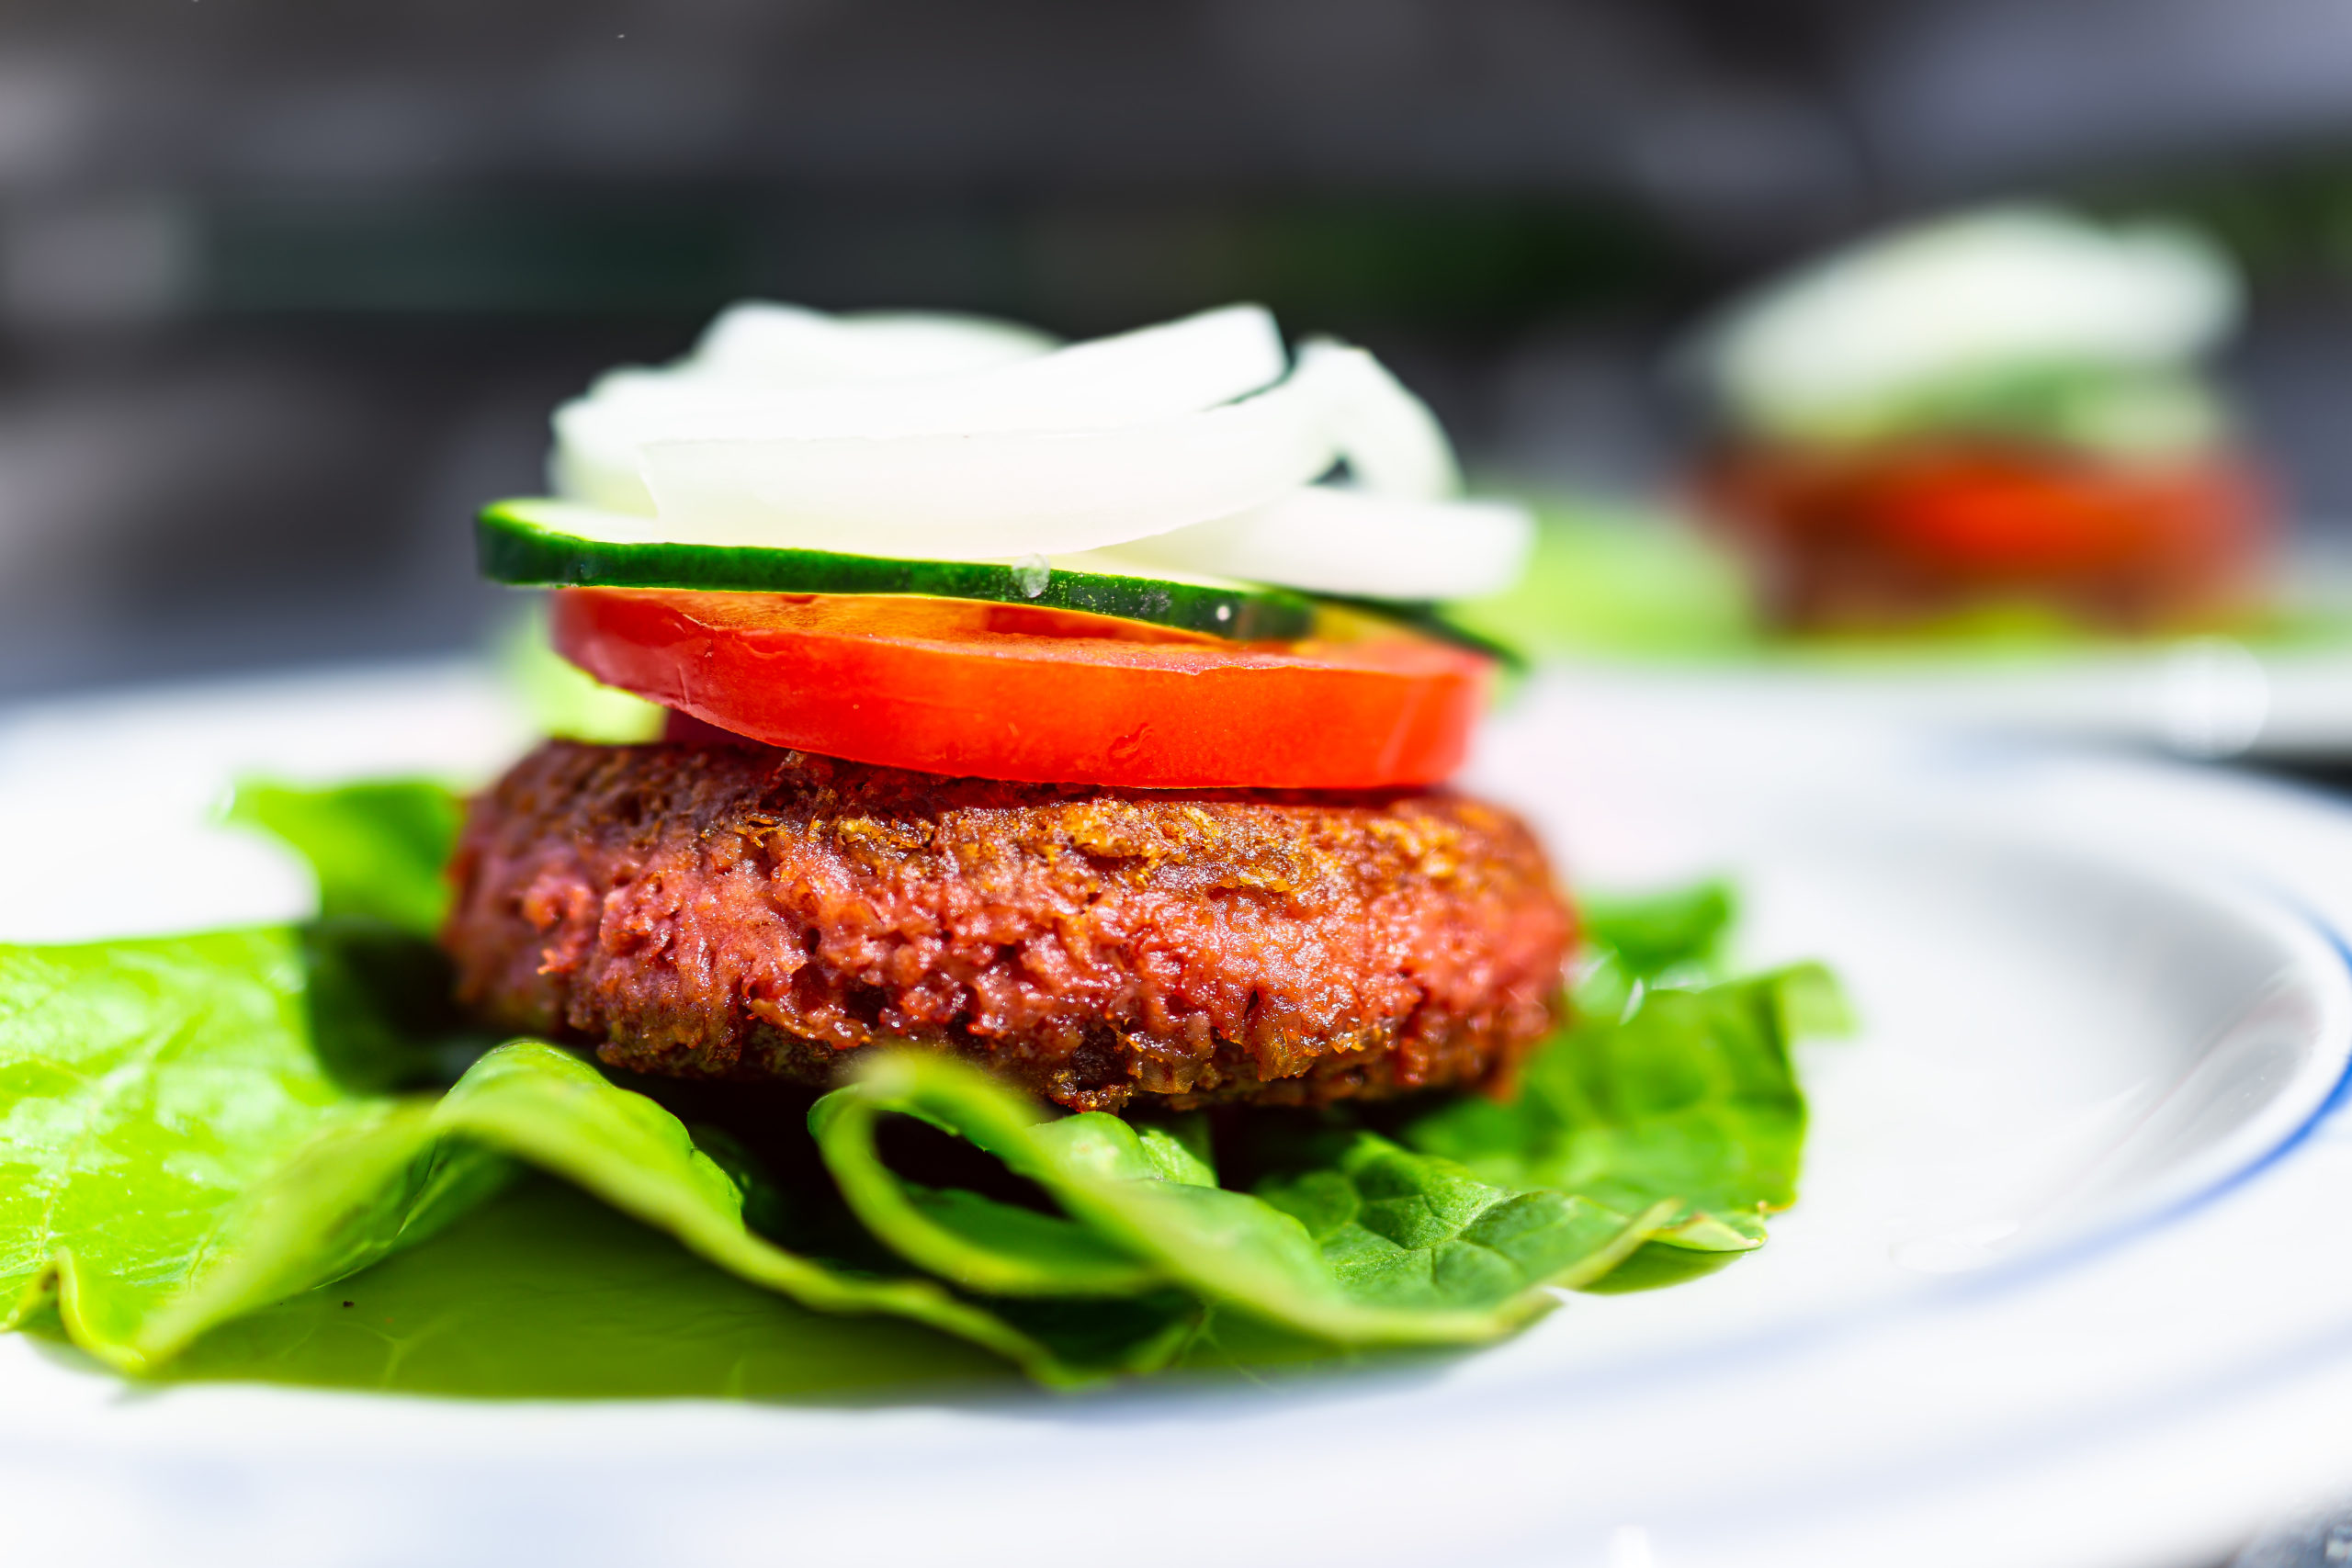 Investing in veganism is more than avoiding meat